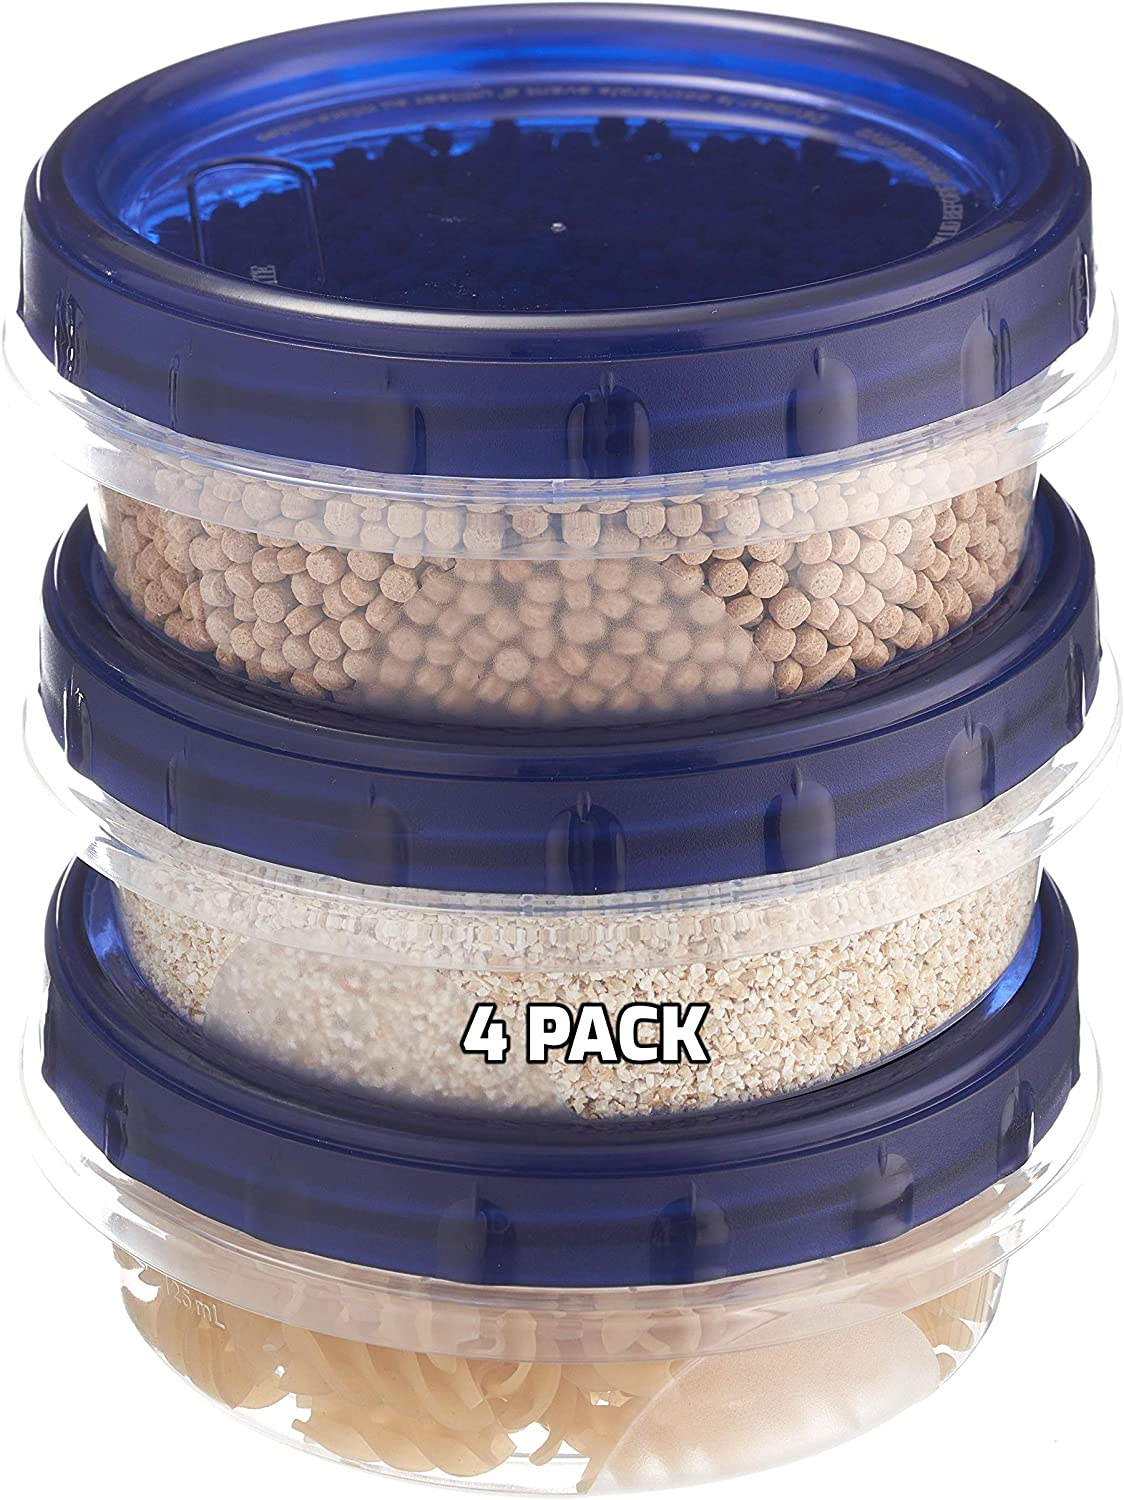 [4 PACK] 8oz Twist Top Storage Containers - Airtight Plastic Food Storage Canisters with Twist & Seal Lids, Leak-Proof - Meal Prep, To Go, Reusable, Stackable, BPA-Free Snack Containers (8 Ounce)